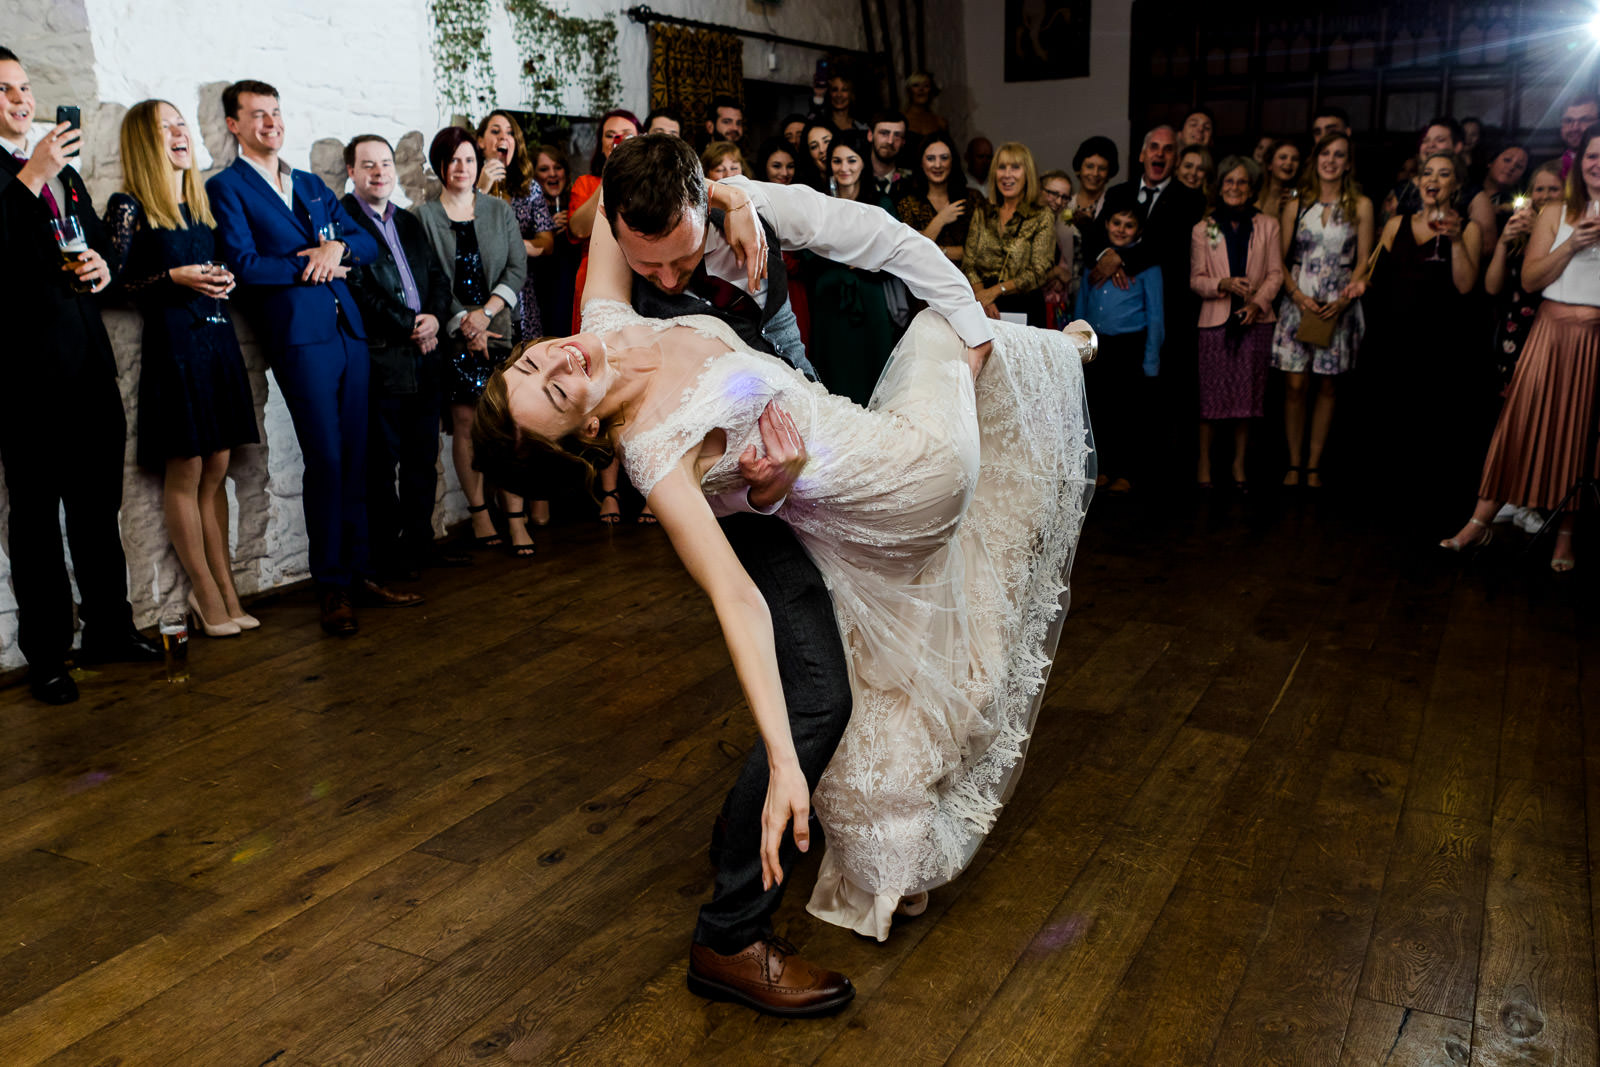 Miskin Manor Wedding Photography - Art by Design Photography - First Dance